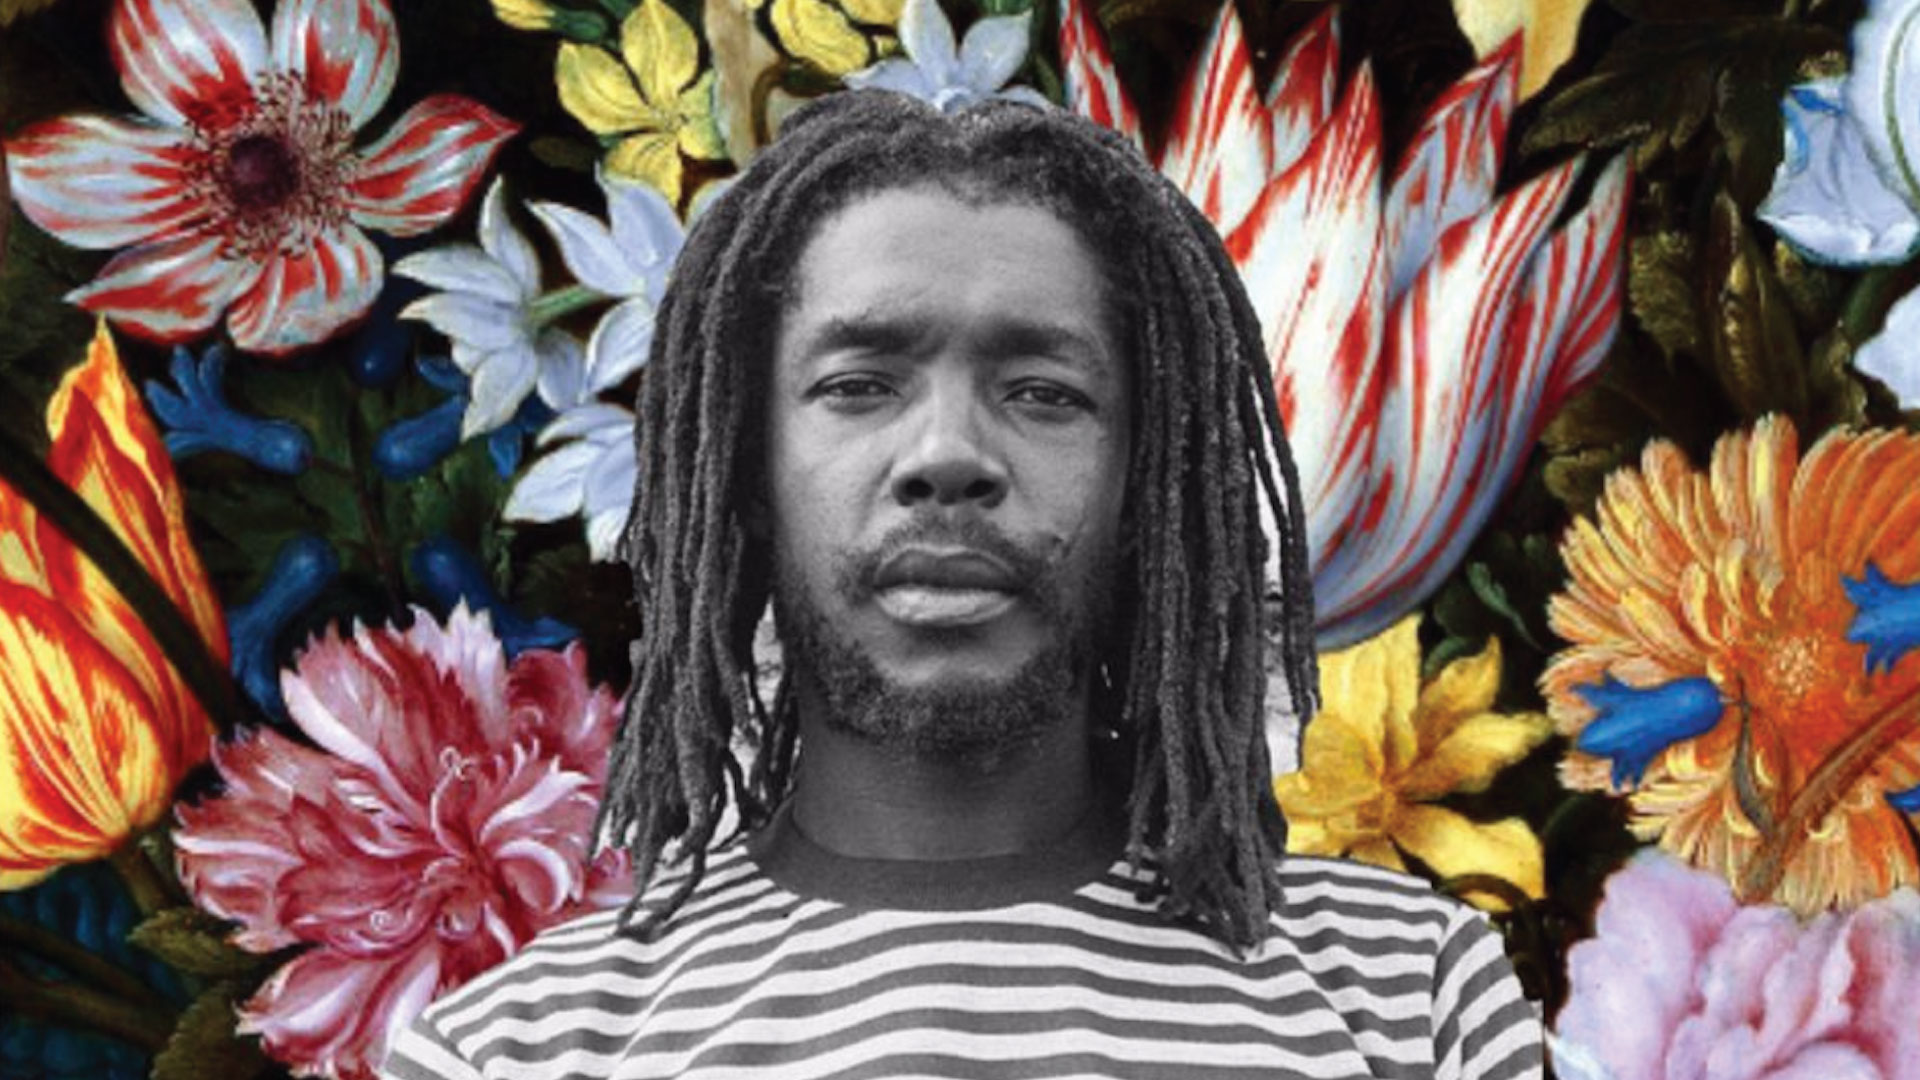 Peter Tosh looking at the camera.